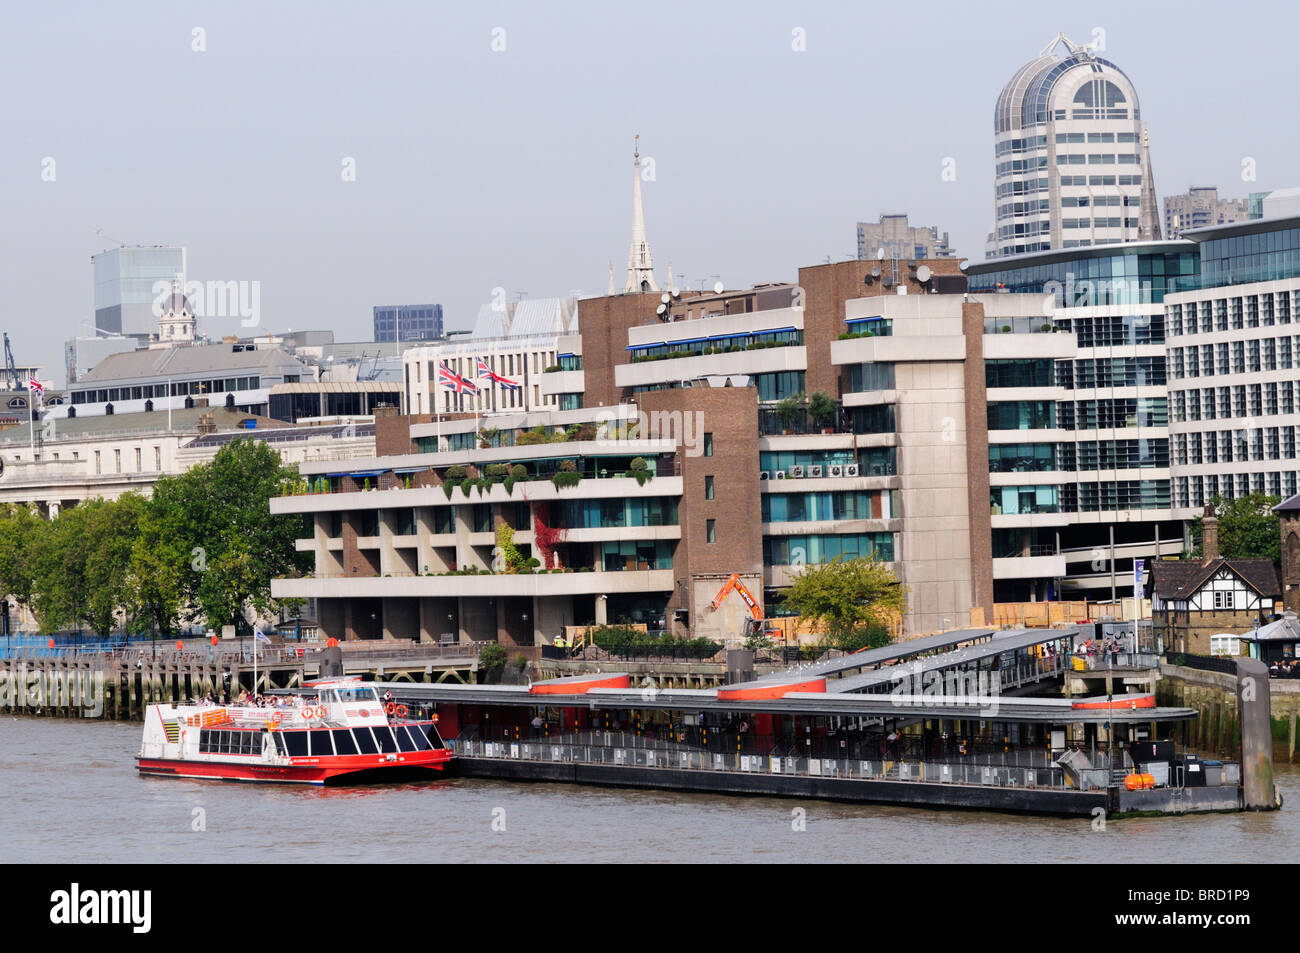 A City Cruises tourist sightseeing boat at Tower Pier, London, England, Uk - Stock Image